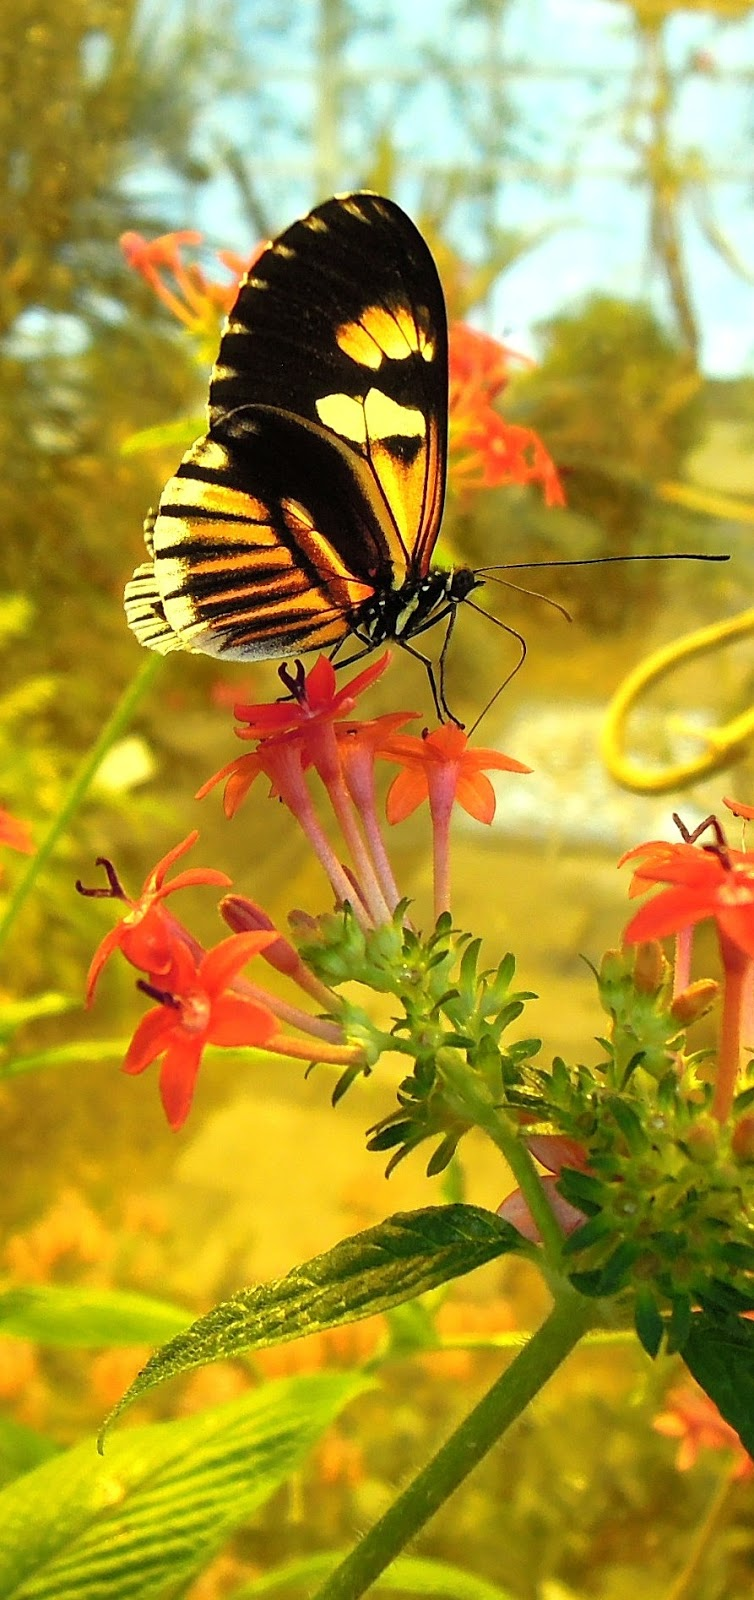 Colorful photo a yellowish black butterfly.